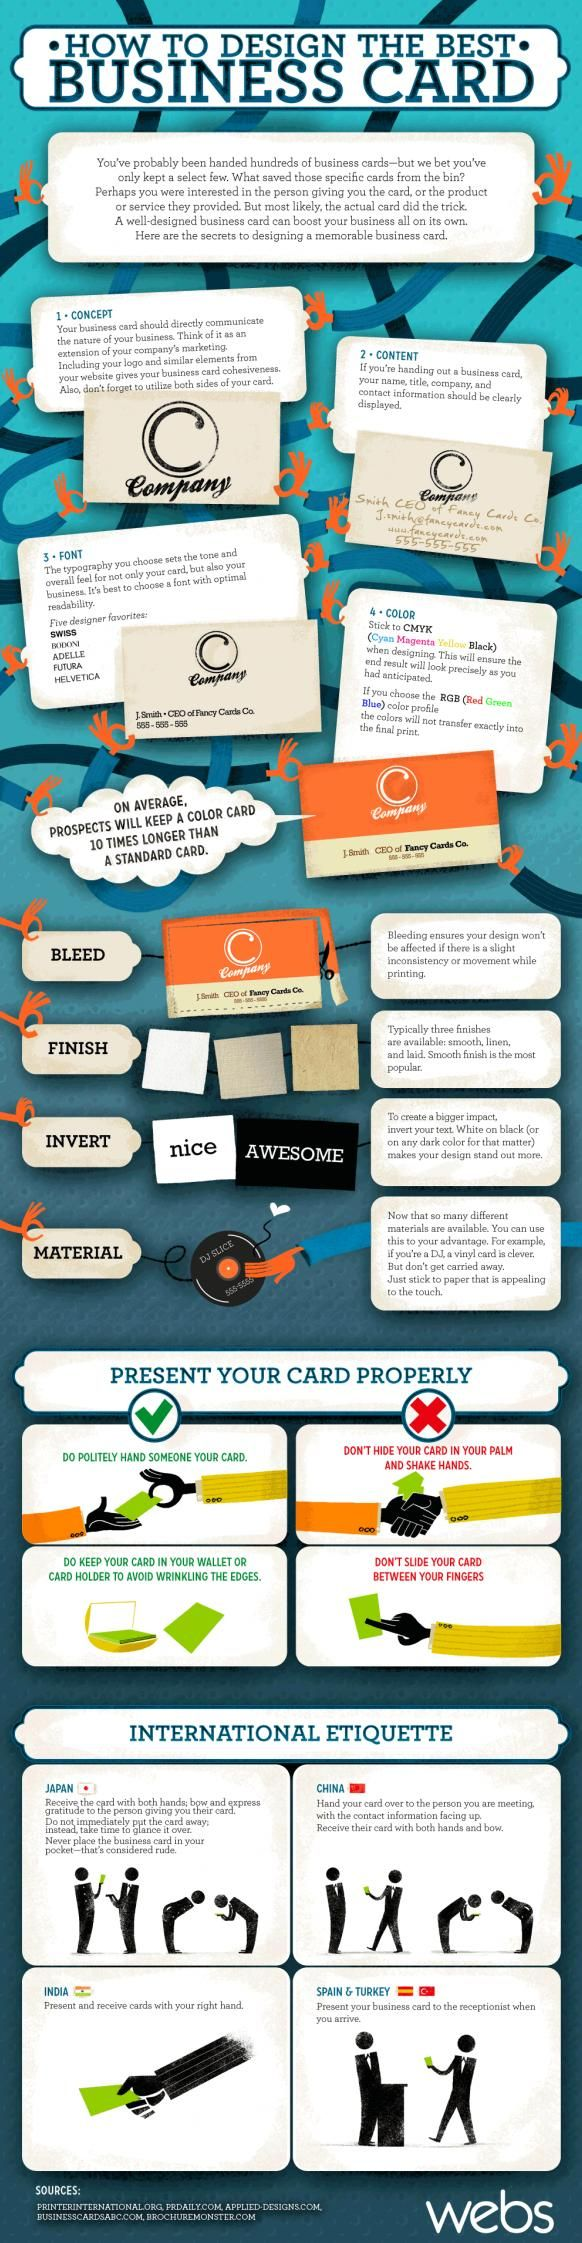 How to Design the Best Business Card    Another #tip - USE YOUR OWN LOGO! Stay away from templates like Vistaprint.